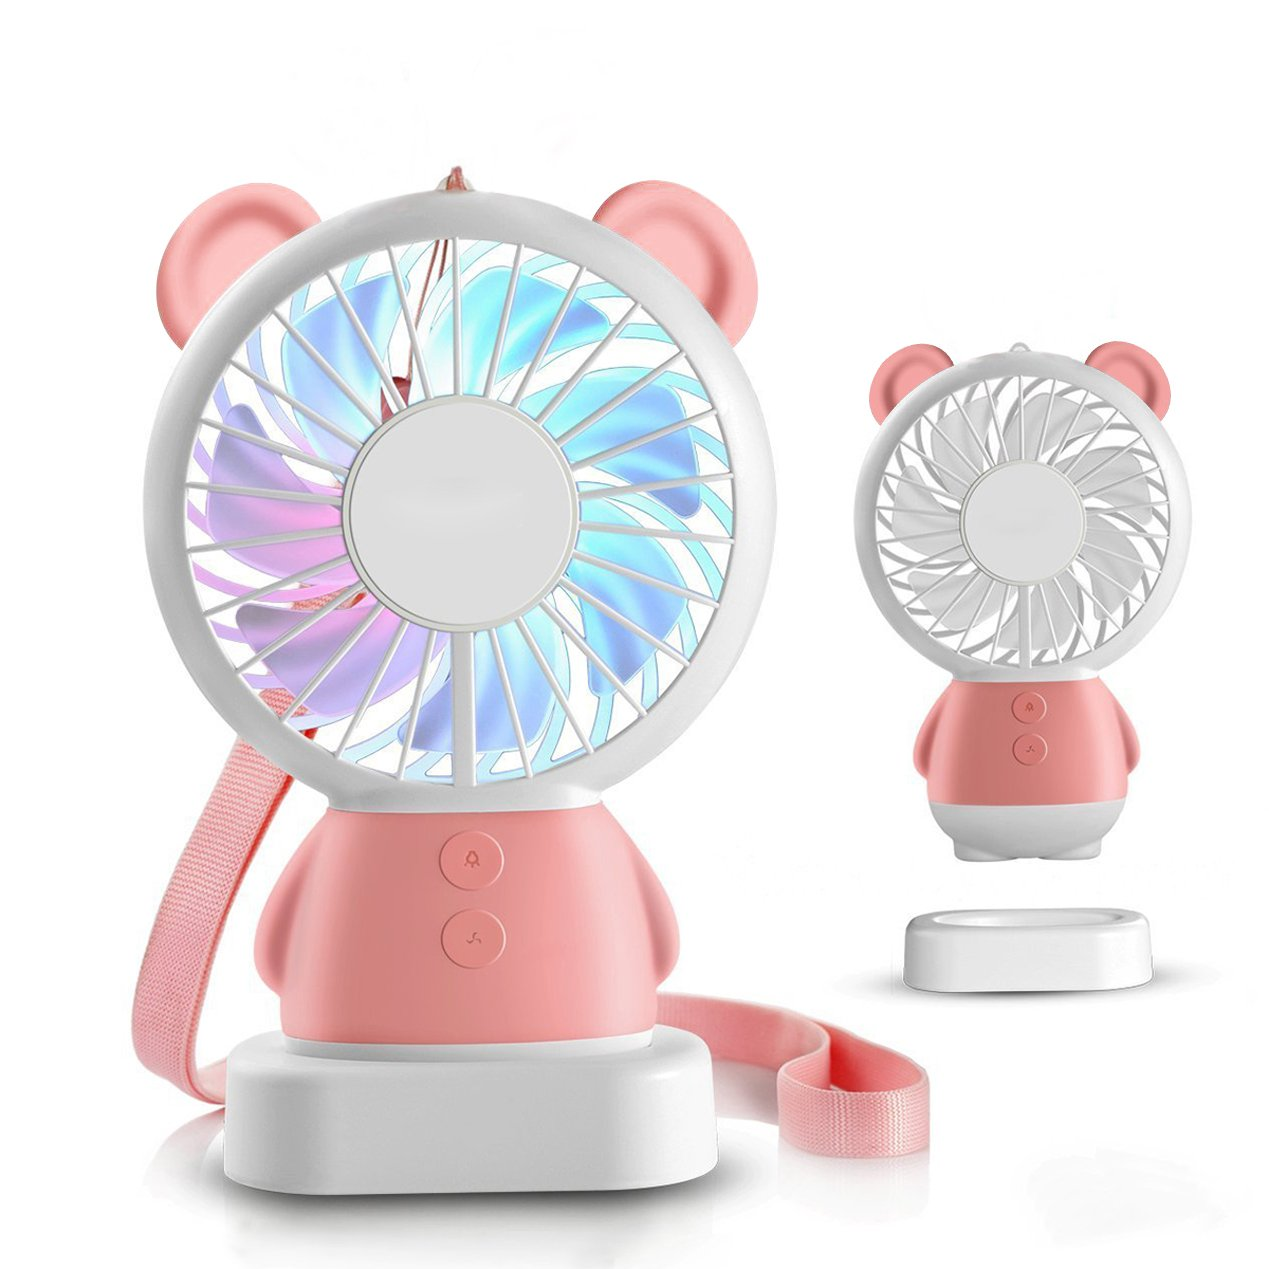 Chof Mini Cute Fan for Kids, Small Handheld Desk Fan for School, Easy Carry and Rechargeable Battery Operated, Best for Children's Day(Pink)